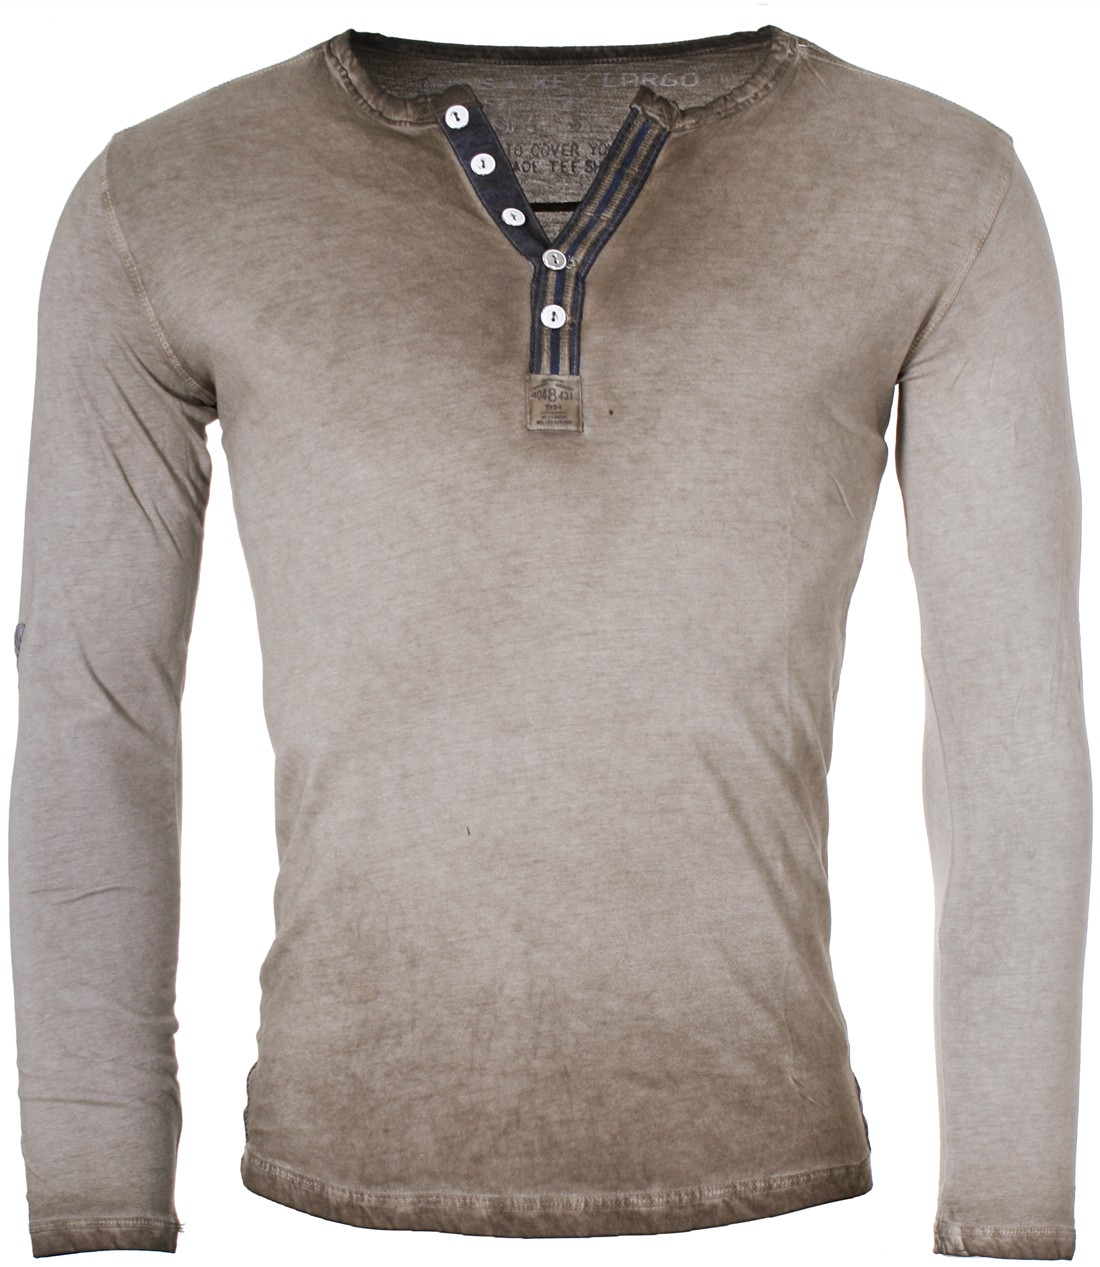 Close [x] Shop our variety of Champion men's long sleeve t shirts, compression t shirts, quarter zip pullovers, Henleys & thermal shirts for men. Champion athleticwear offers a variety of long sleeve athletic shirts for men that are sure to meet your workout and style criteria.